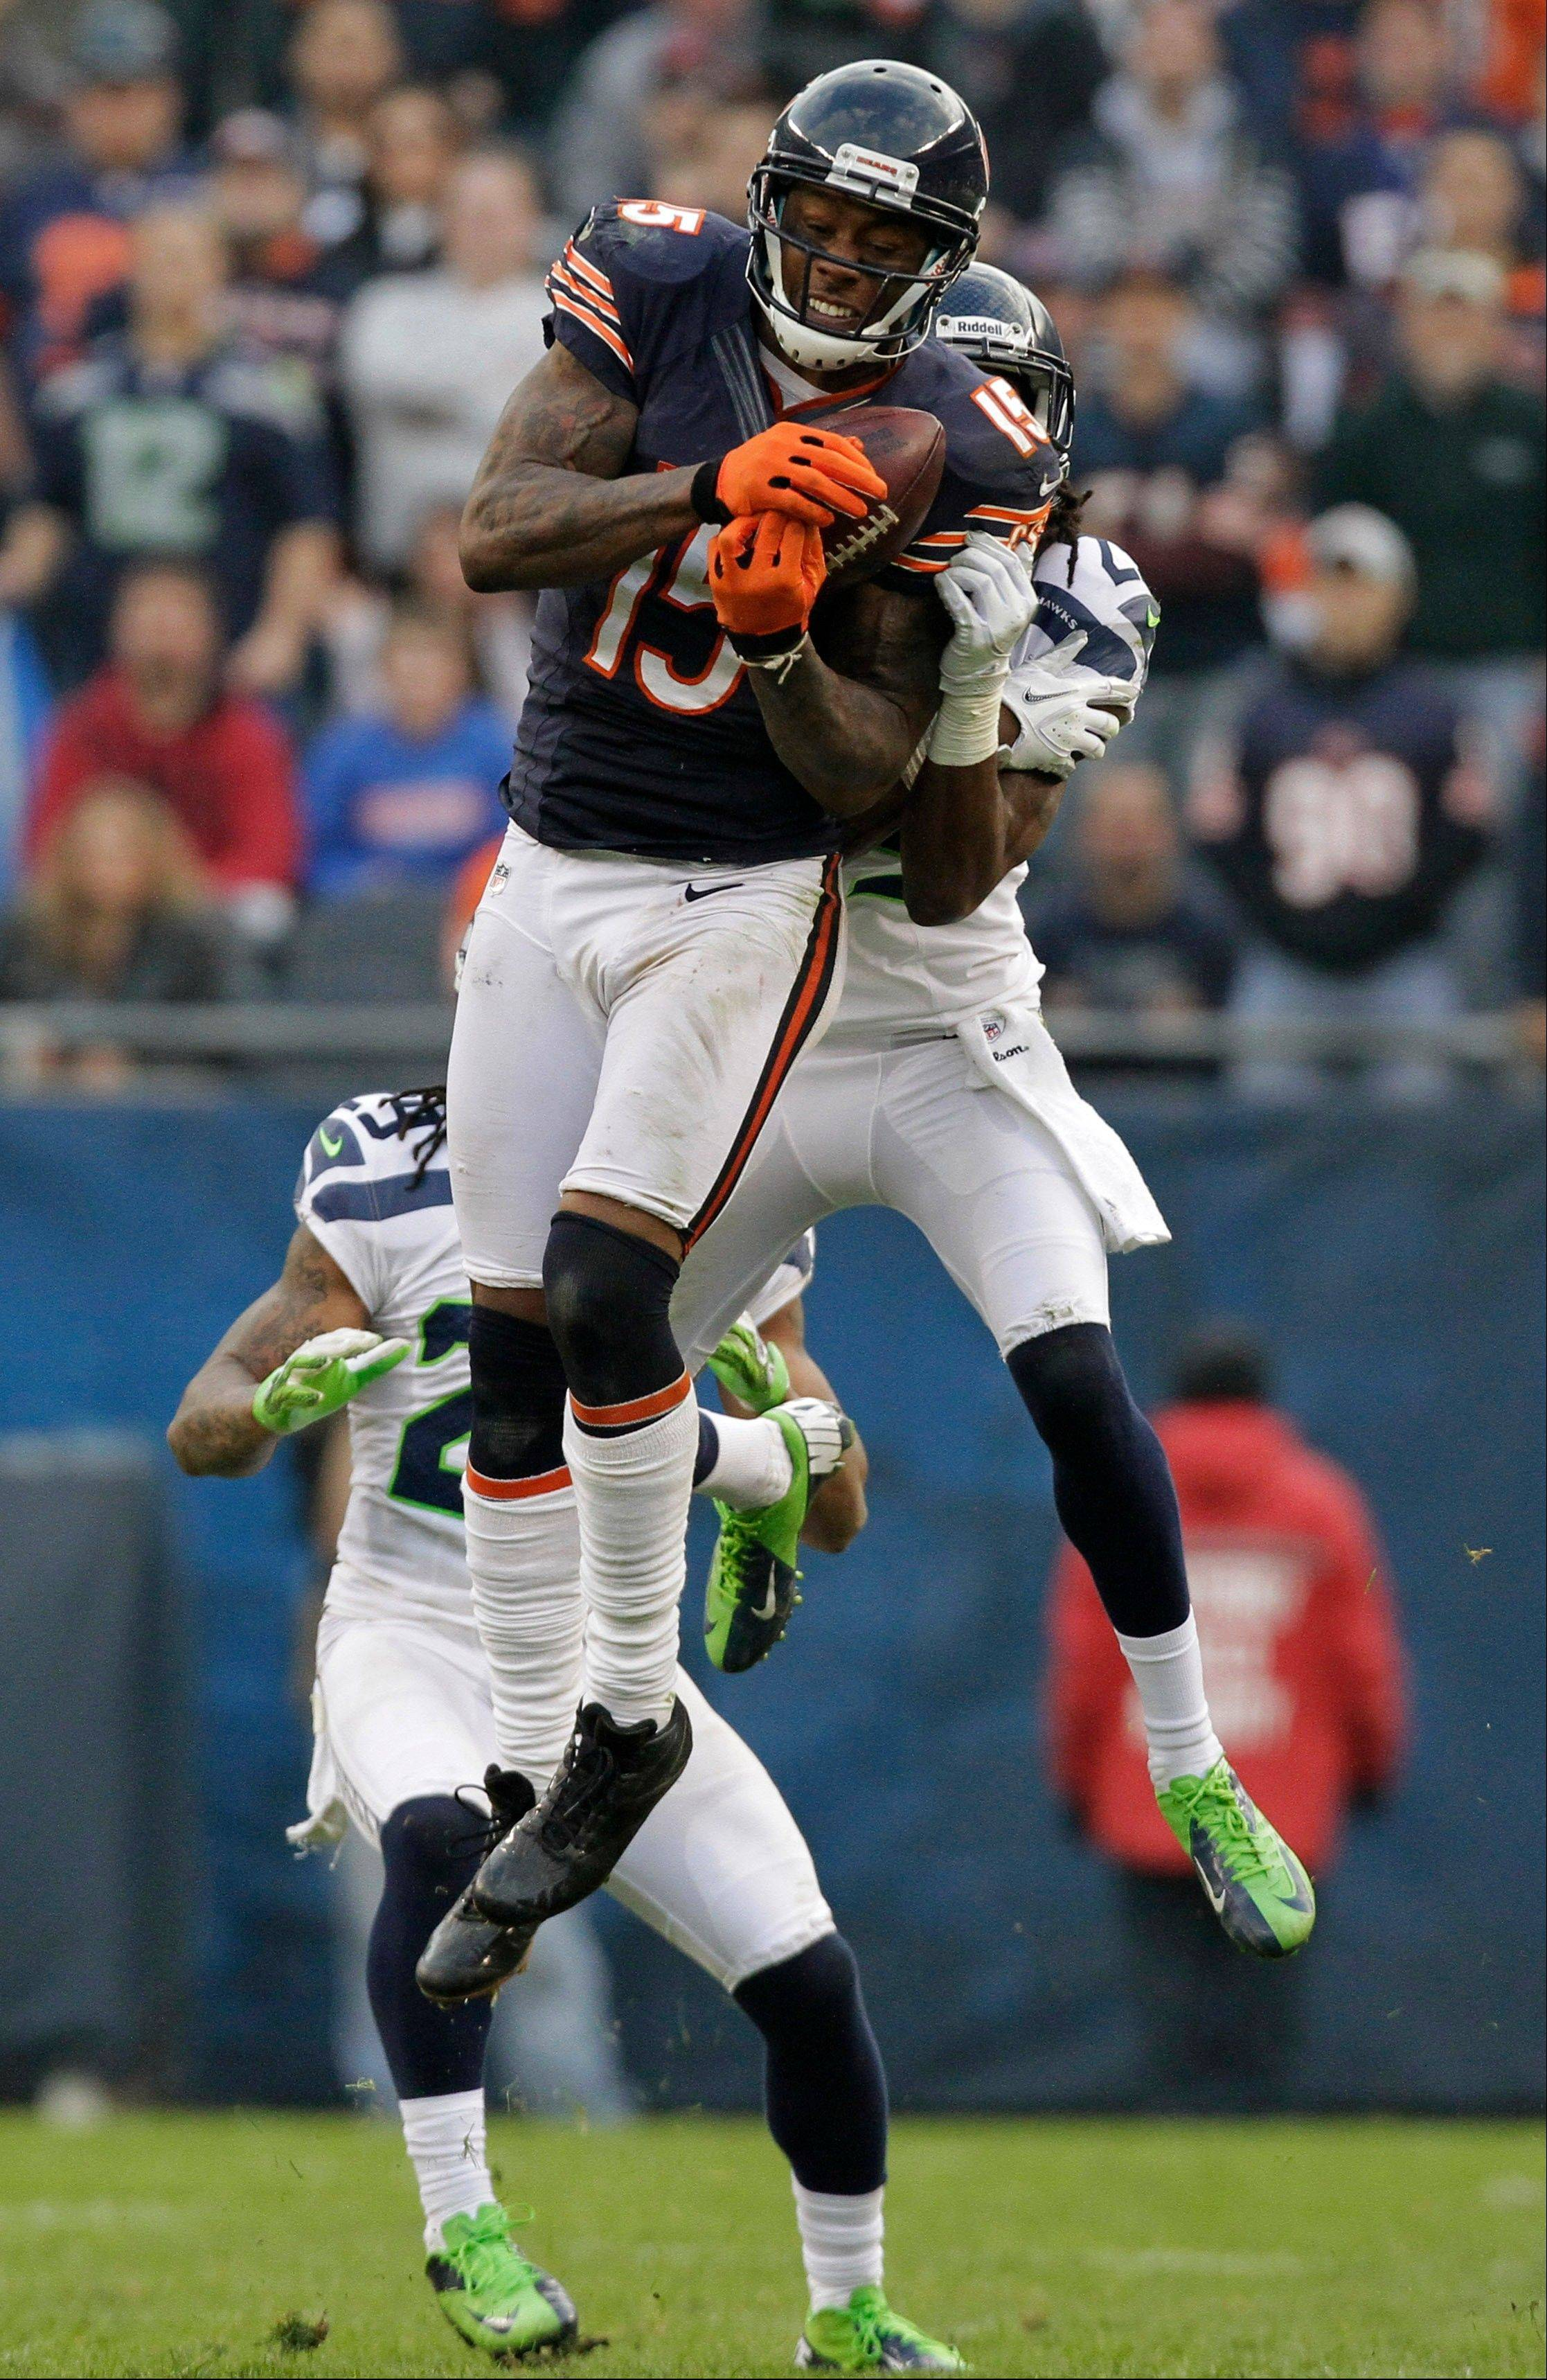 Nice to see Bears' Marshall gets Packers rivalry